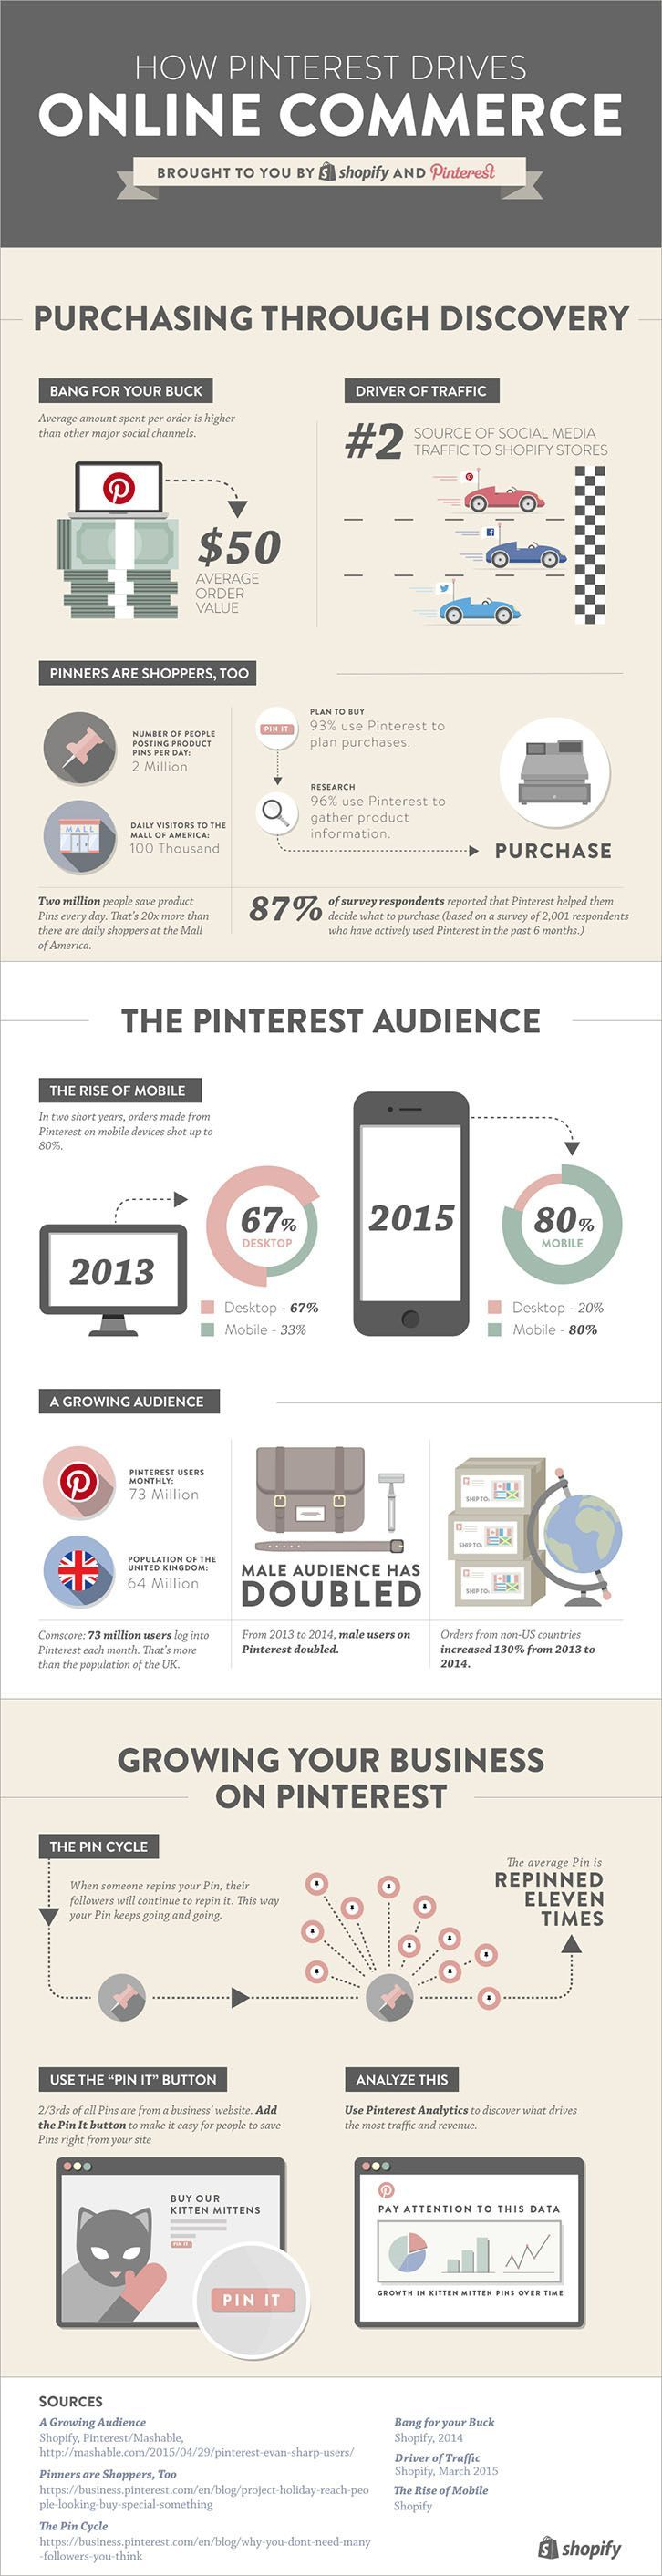 How #Pinterest Drives Online Commerce [#Infographic] — #Ecommerce Marketing Blog - Ecommerce News, Online Store Tips & More by Shopify (scheduled via http://www.tailwindapp.com?utm_source=pinterest&utm_medium=twpin&utm_content=post115261775&utm_campaign=scheduler_attribution)